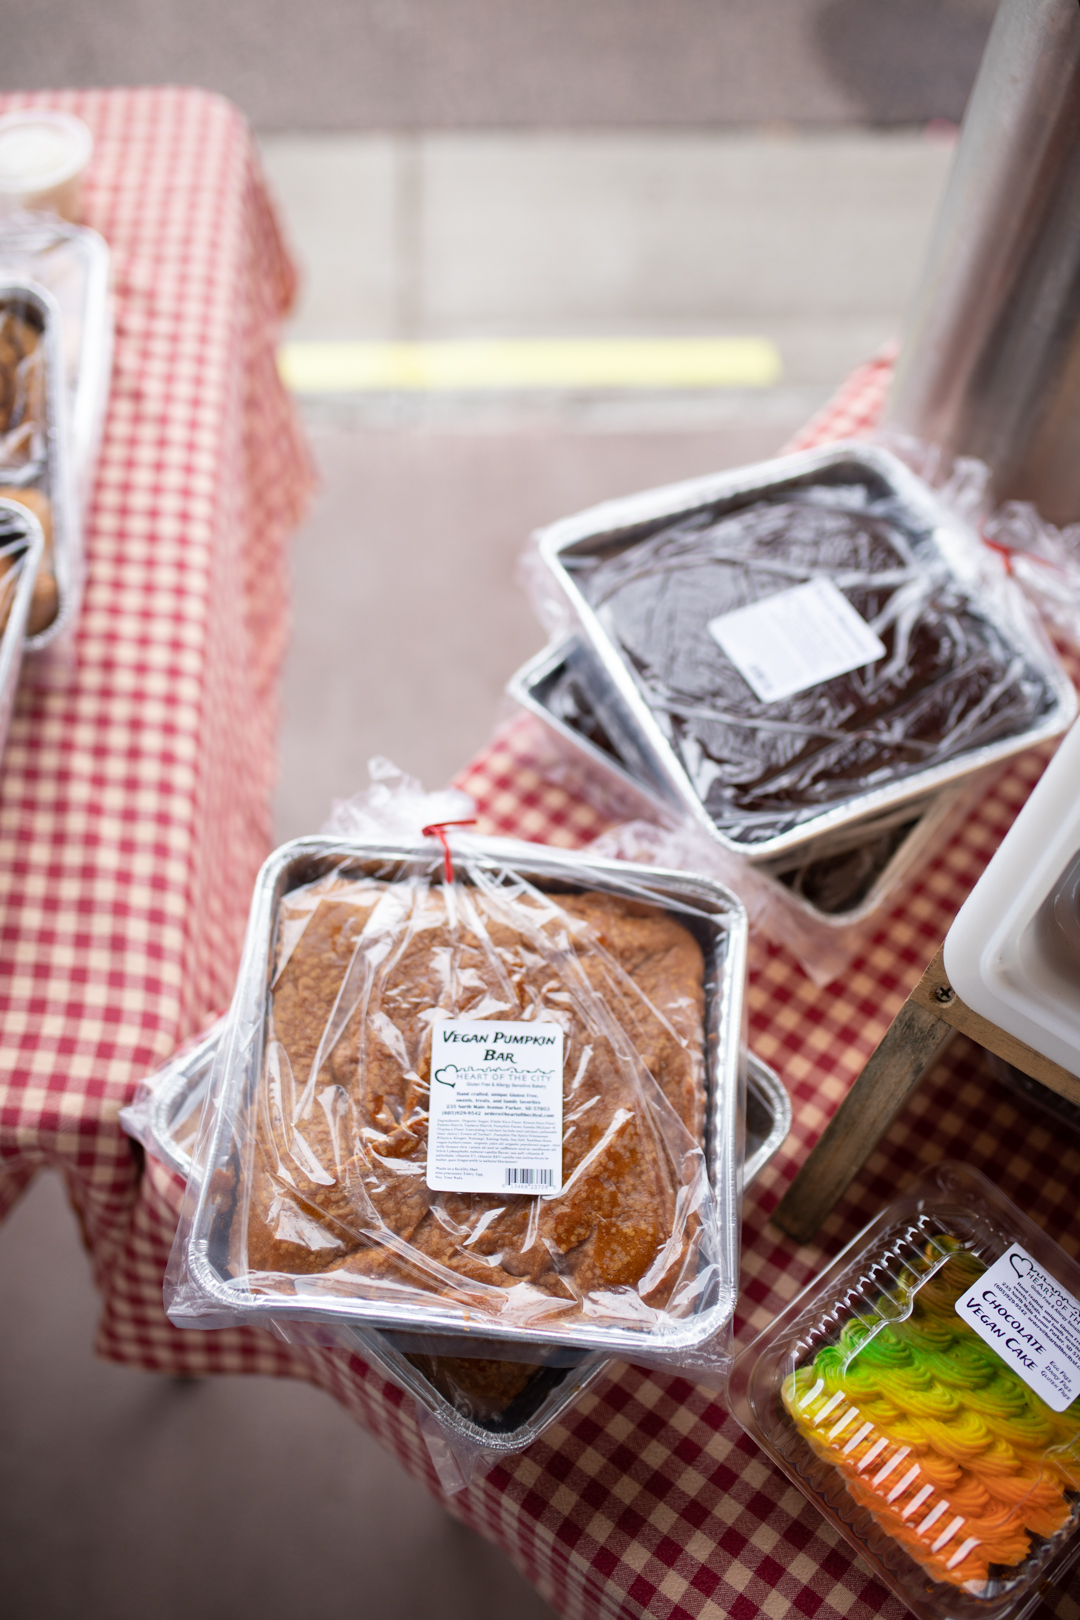 vegan baked goodness at the falls park farmers market, south dakota | thelovedesignedlife.com #vegan #farmersmarket #familytravel